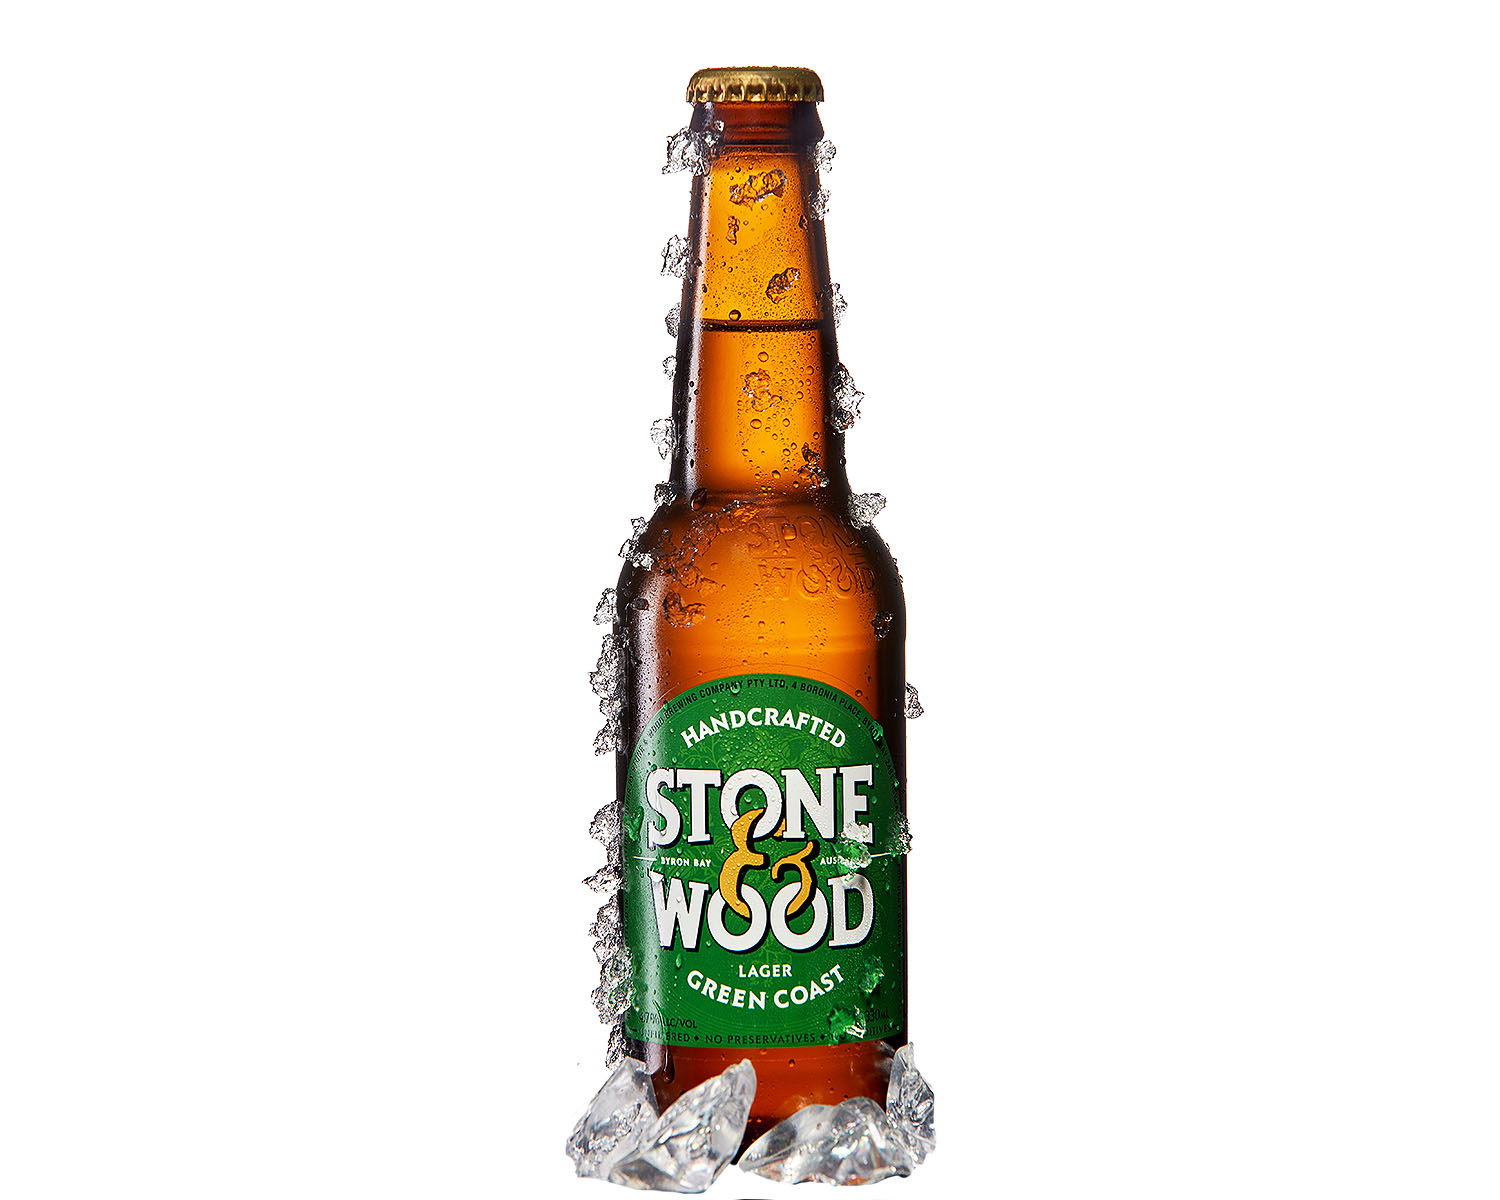 Stone_Wood_Lager-iced-on-ice_1500w.jpg